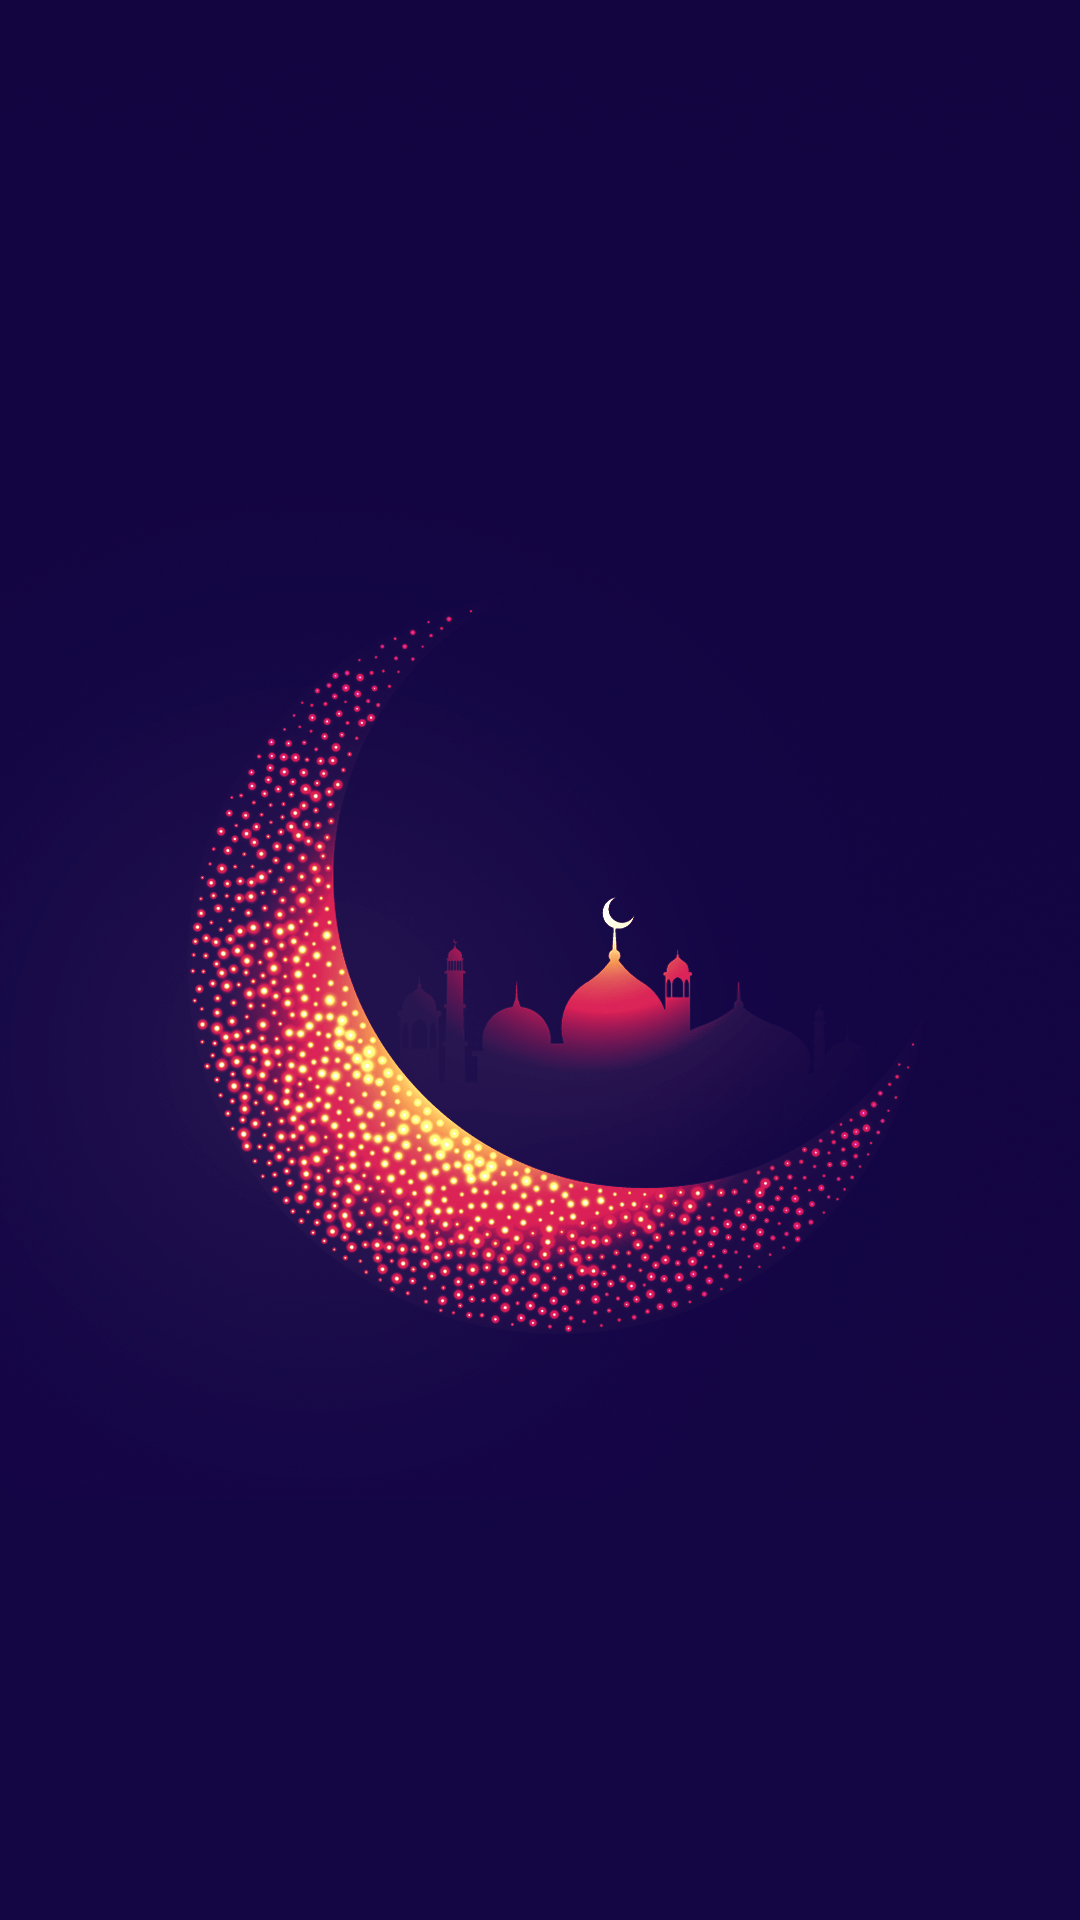 Cute Crisp Wallpapers Ultra Hd Creative Moon Wallpaper For Your Mobile Phone 0066